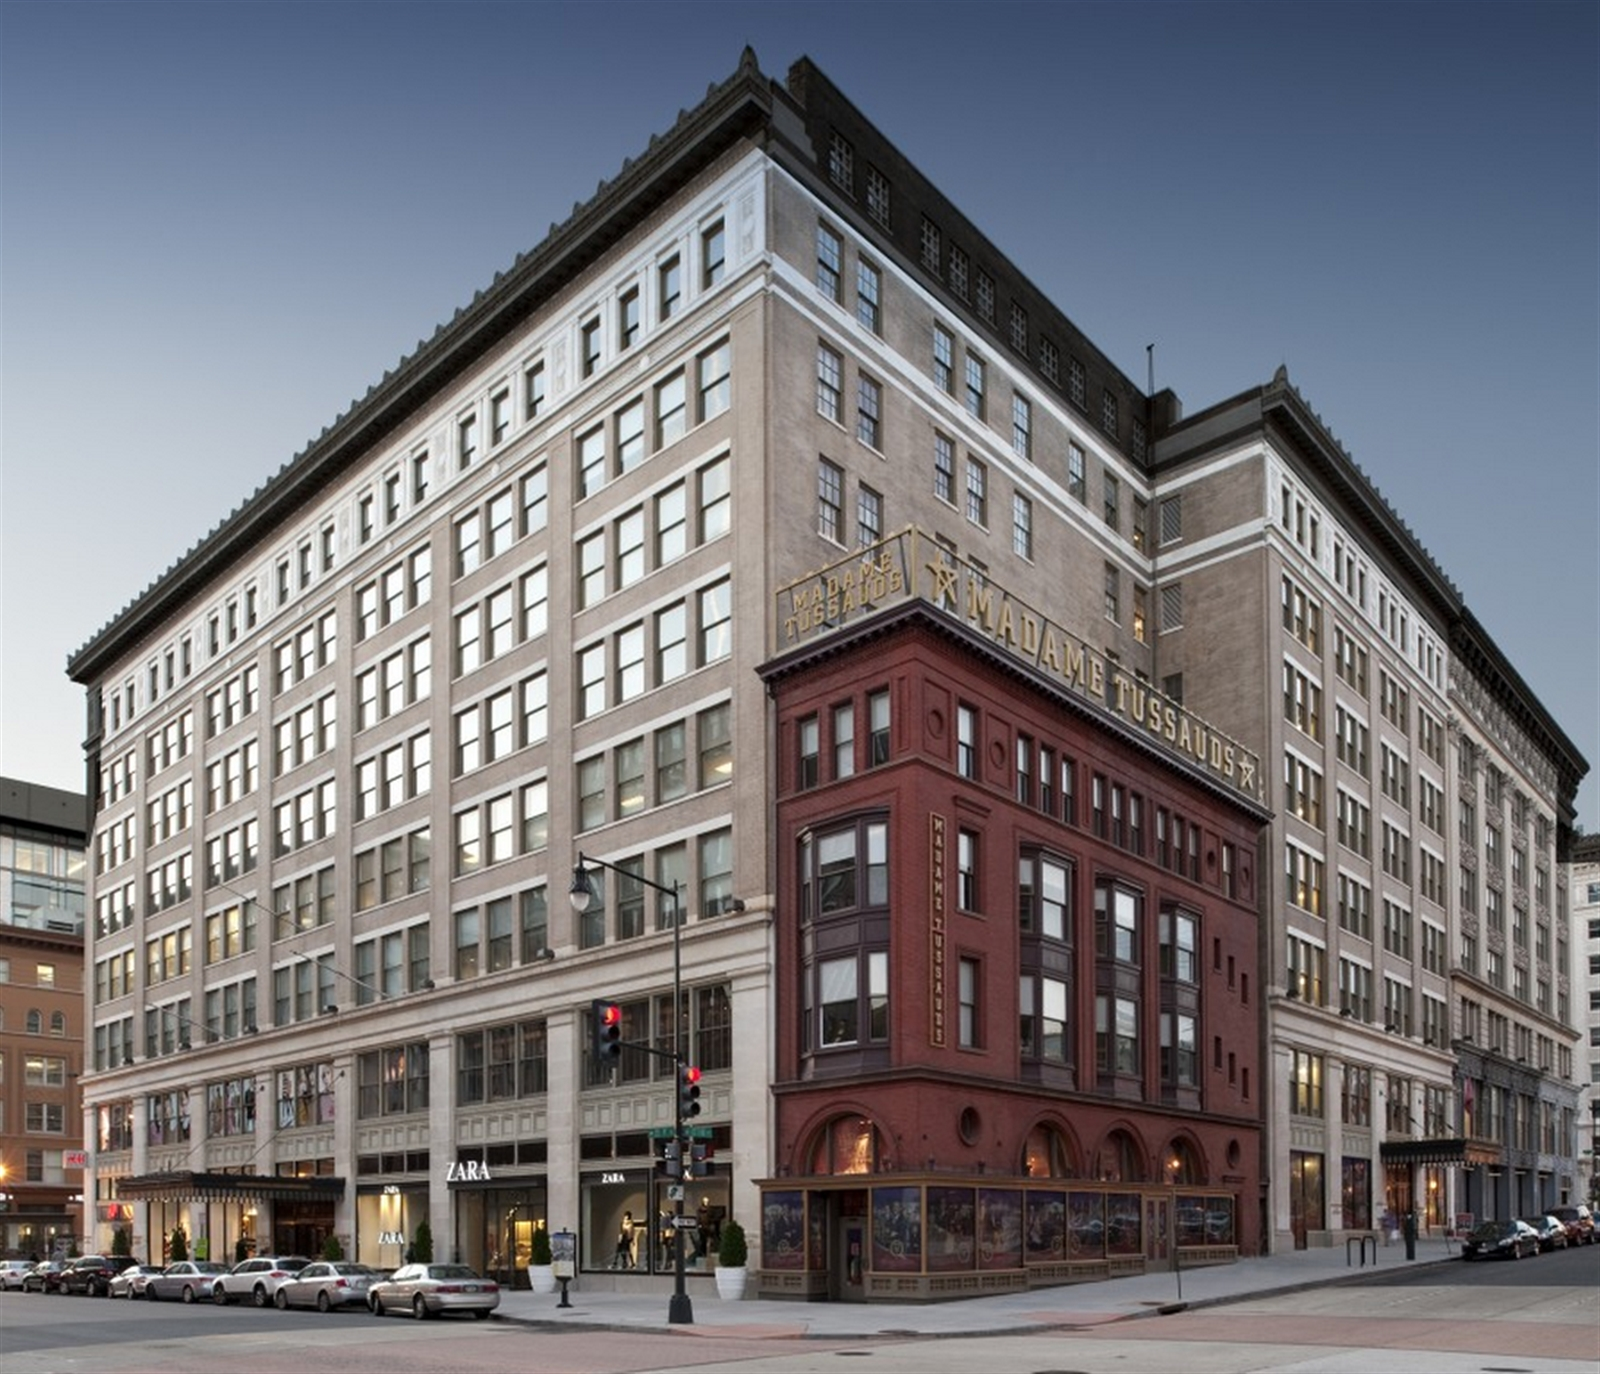 The Woodward & Lothrop building is located in Penn Quarter in Washington, D.C. There is about half a million square feet that encompasses an entire city block. The retail tenants include: Madame Tussauds, Zara, H&M and Forever 21. (Photo by Douglas Development)